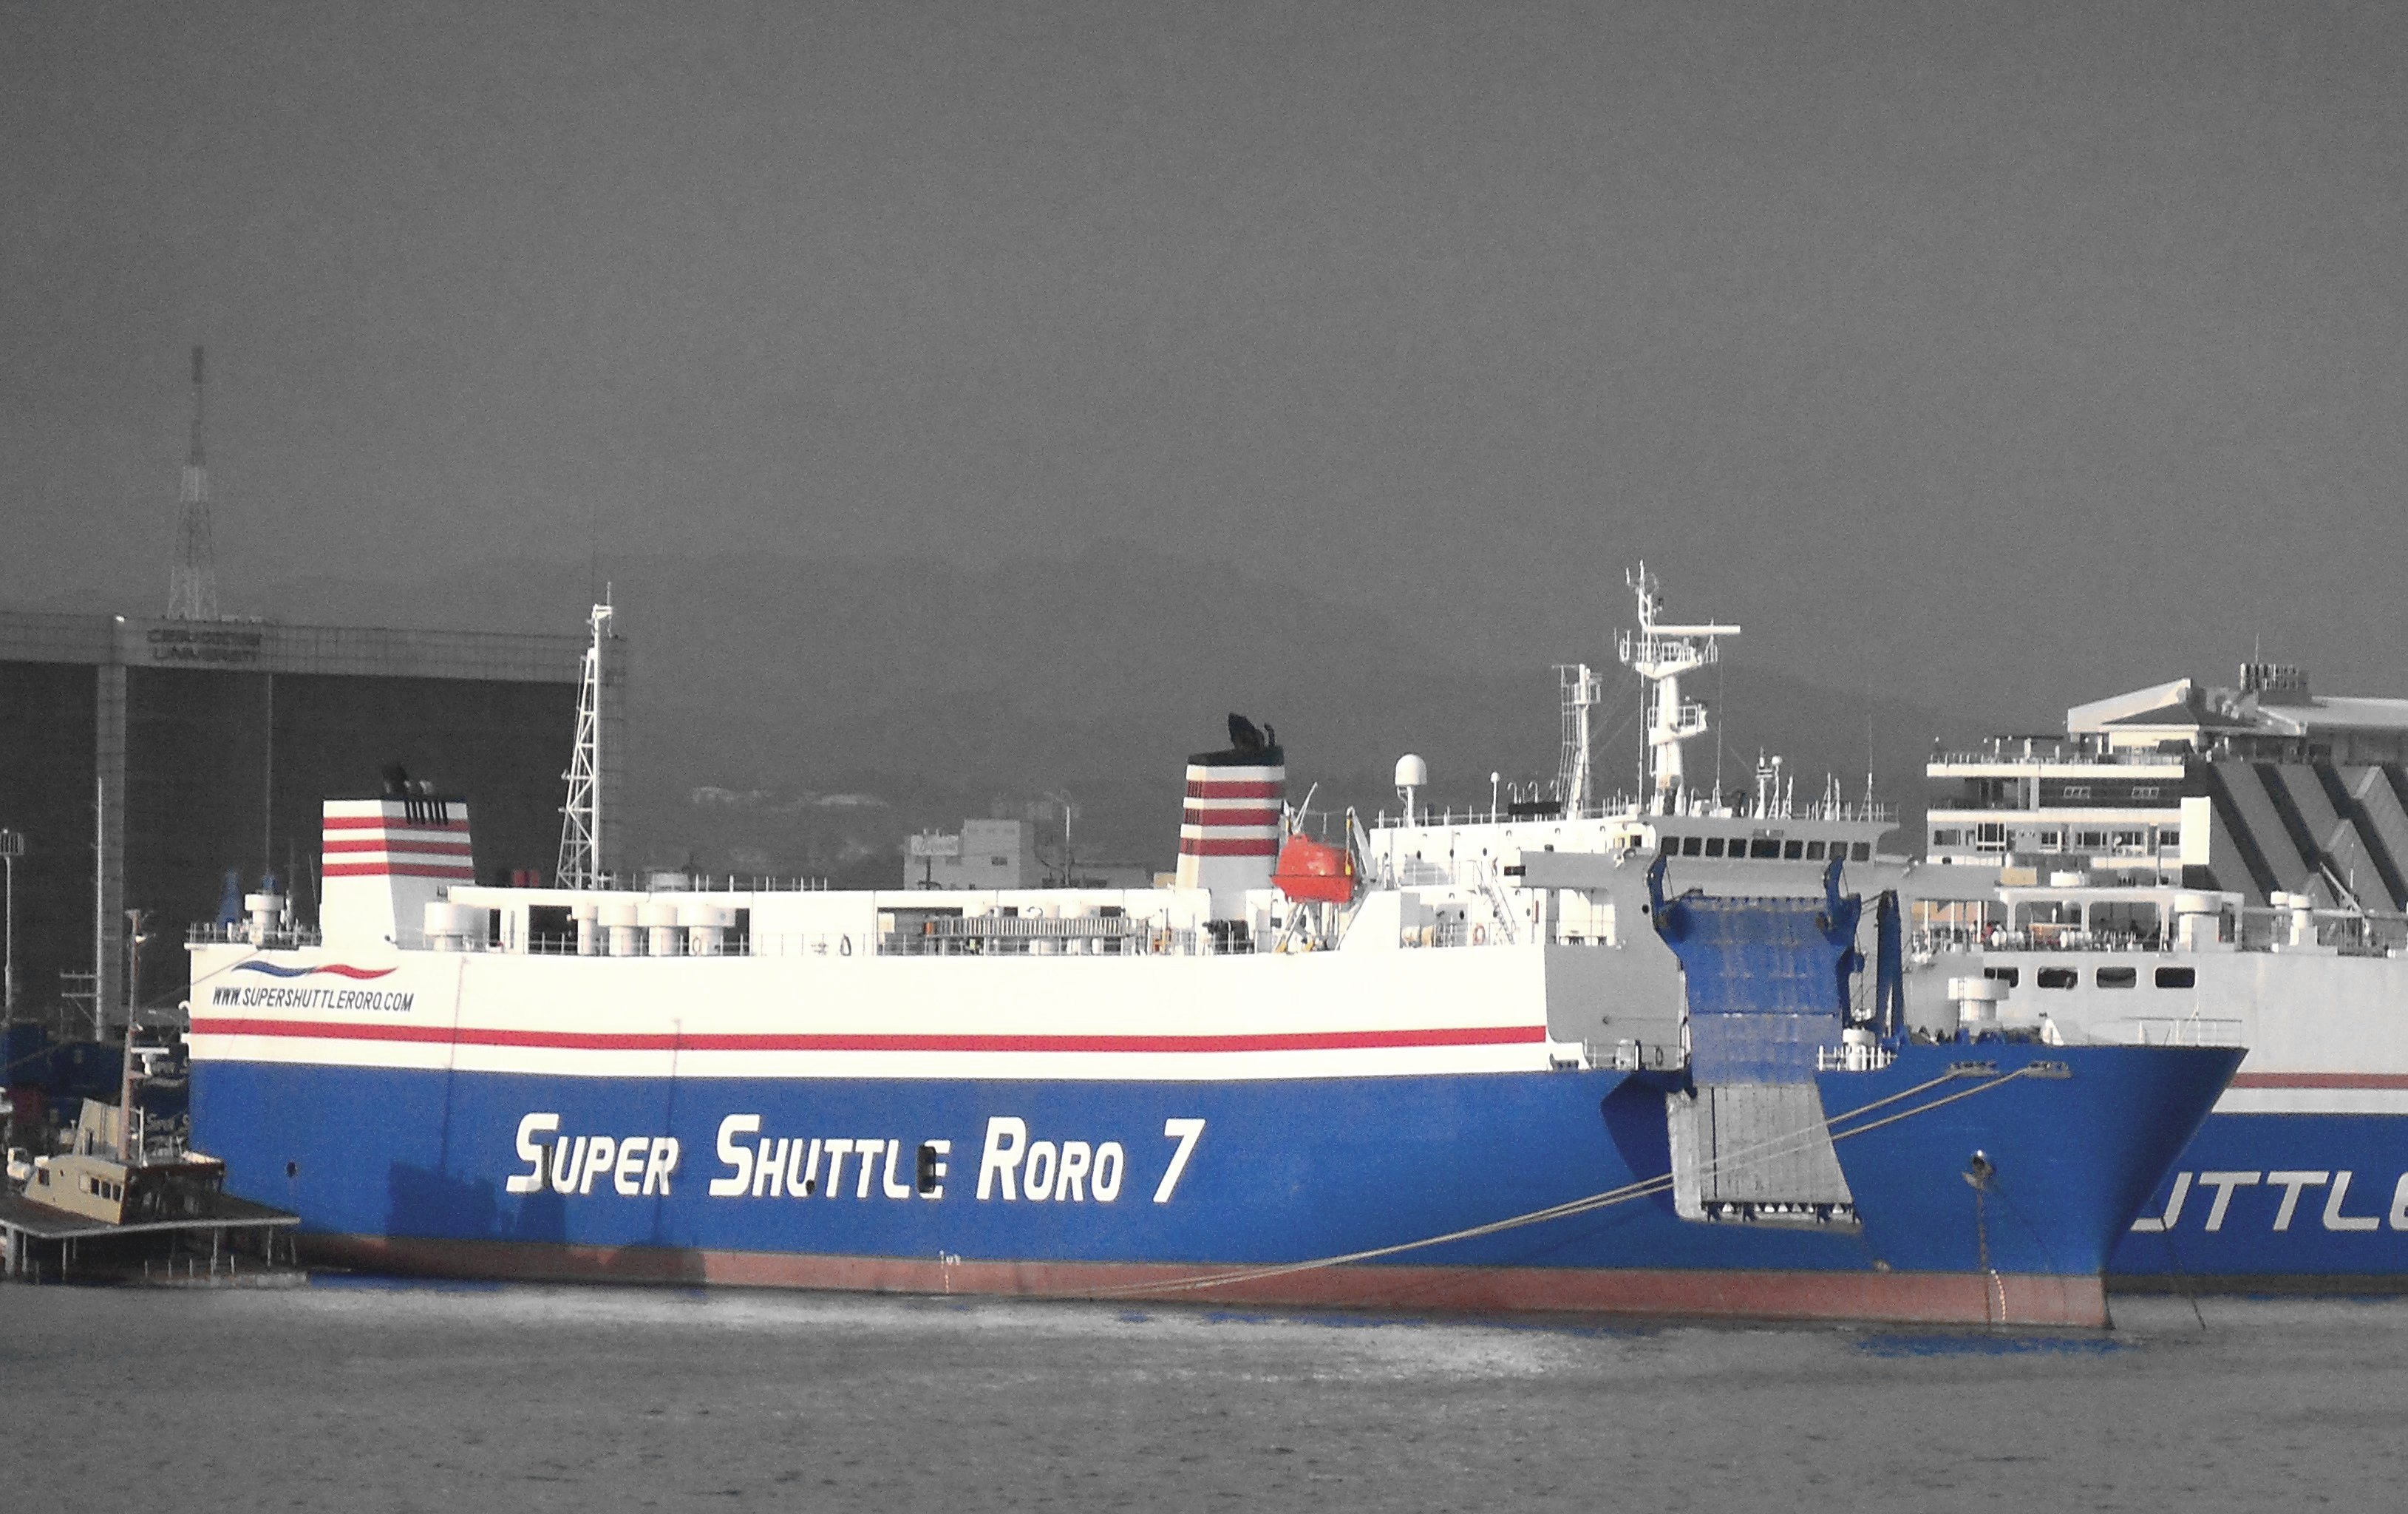 Super Shuttle Roro 7